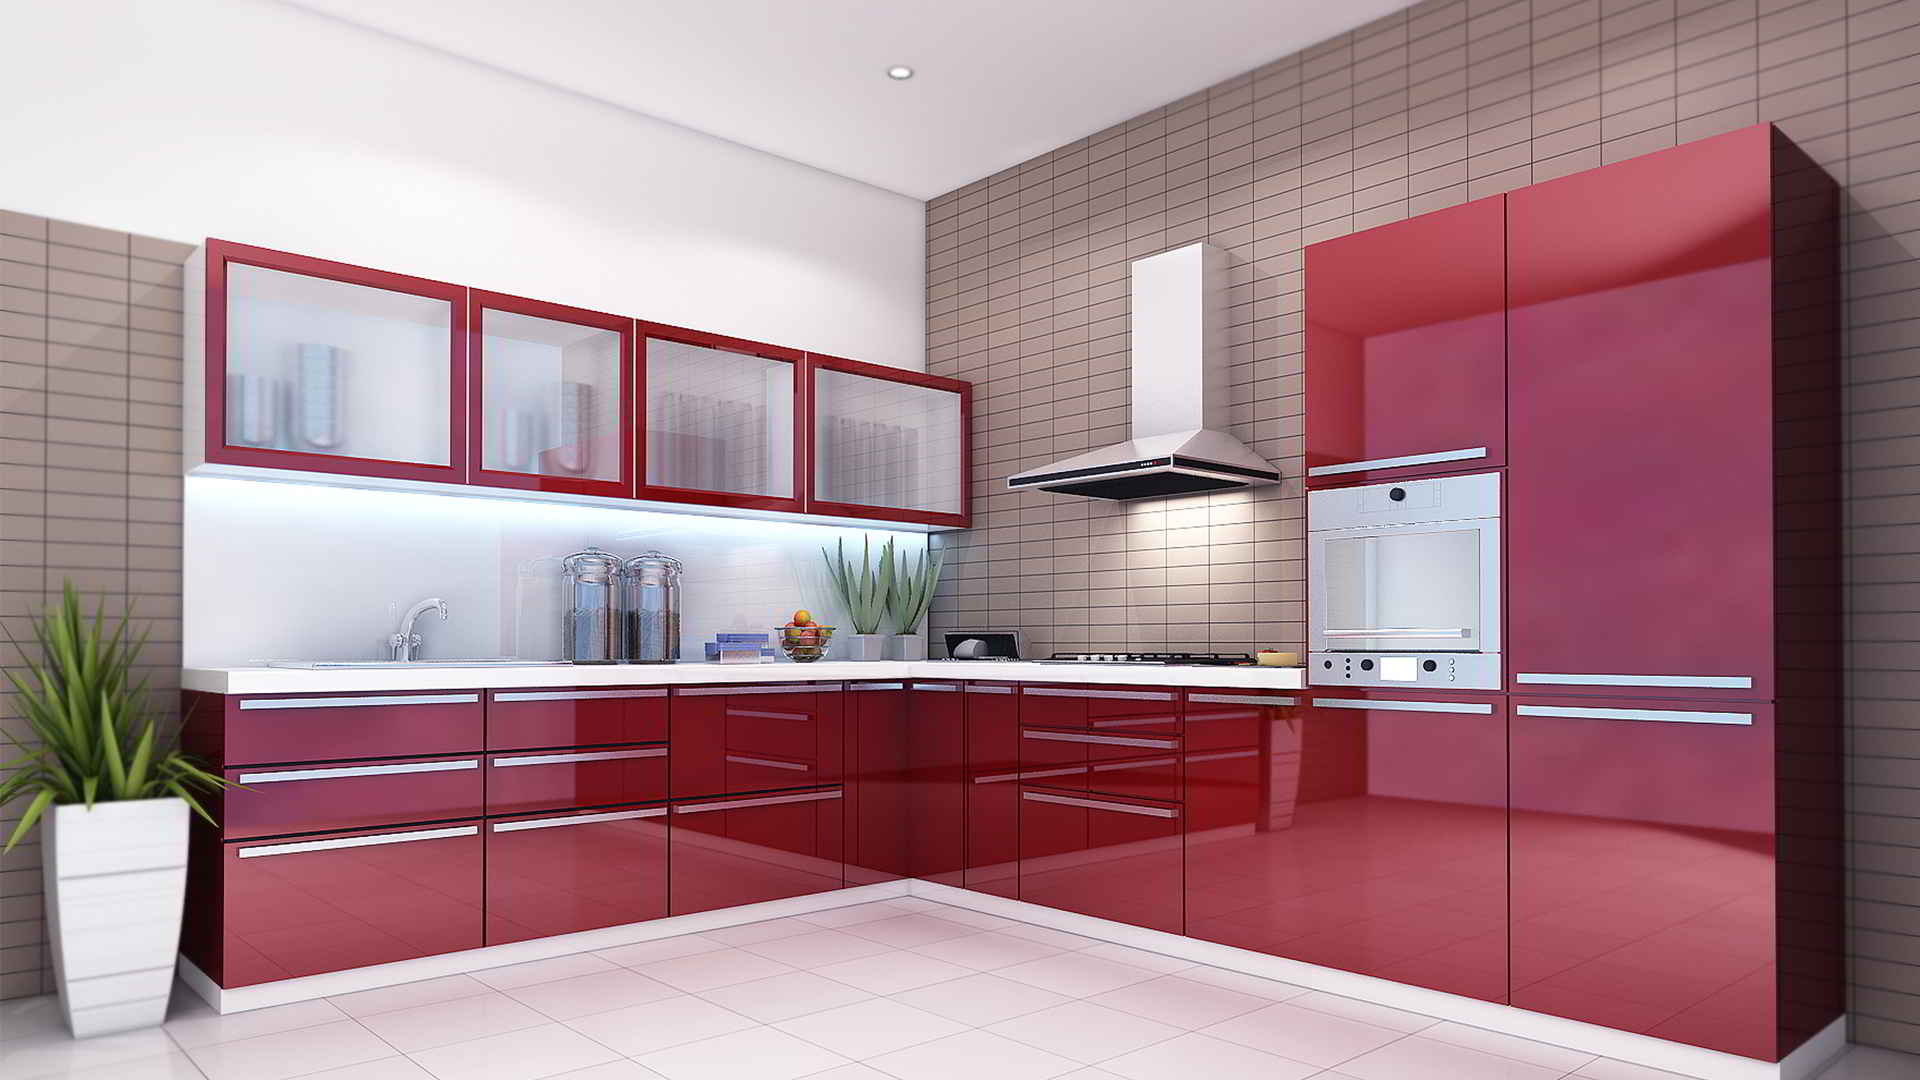 25 Latest Design Ideas Of Modular Kitchen Pictures  : Red Color Modular Kitchen Ideas and Pictures from youmeandtrends.com size 1920 x 1080 jpeg 105kB